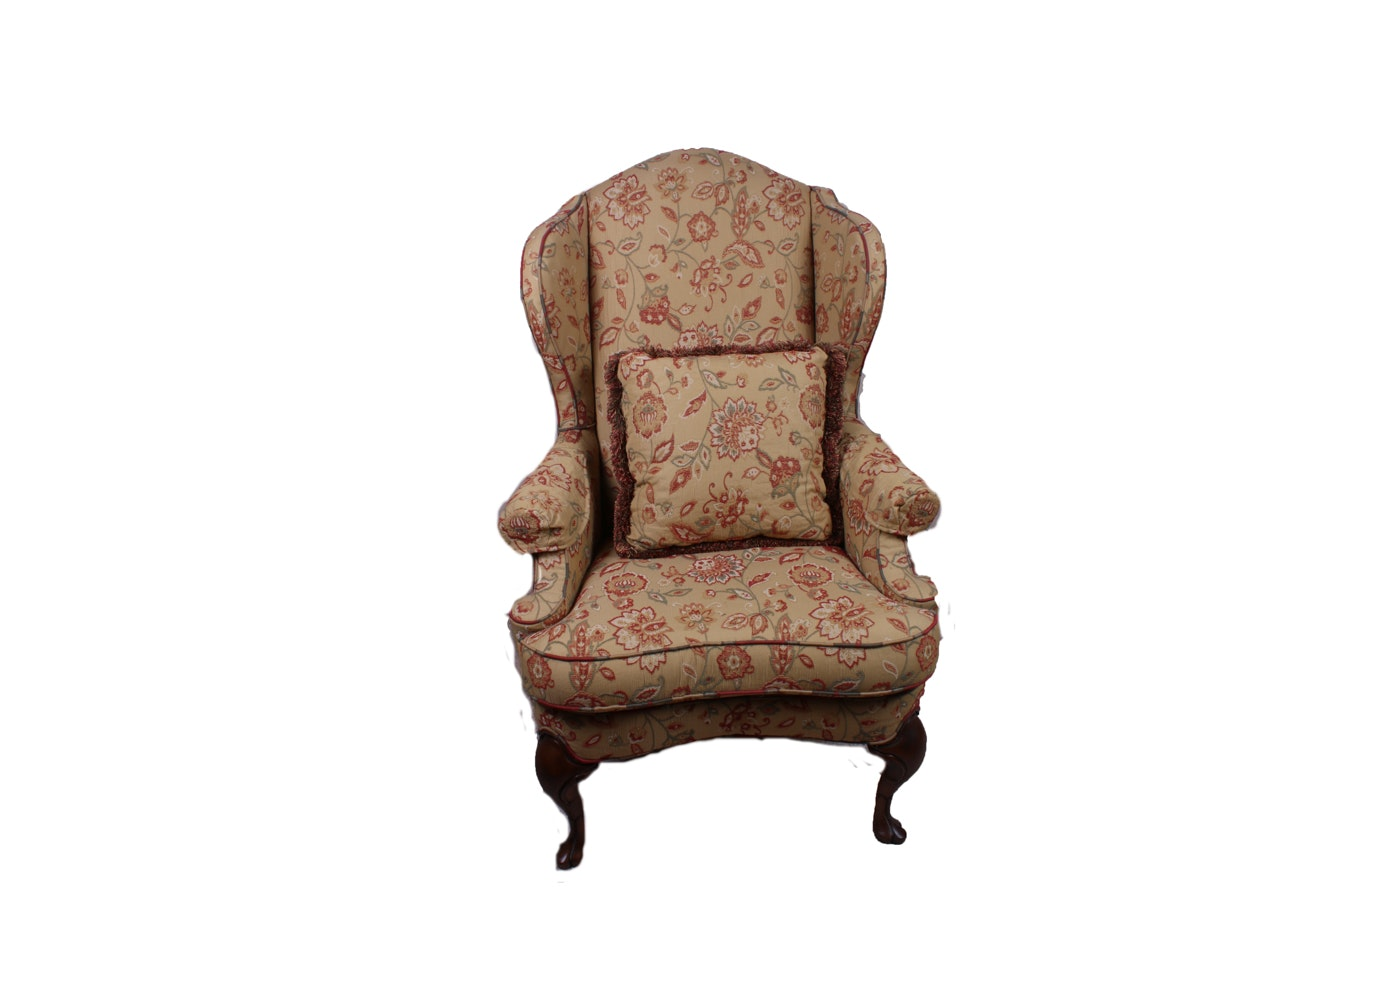 Queen Anne Chair History